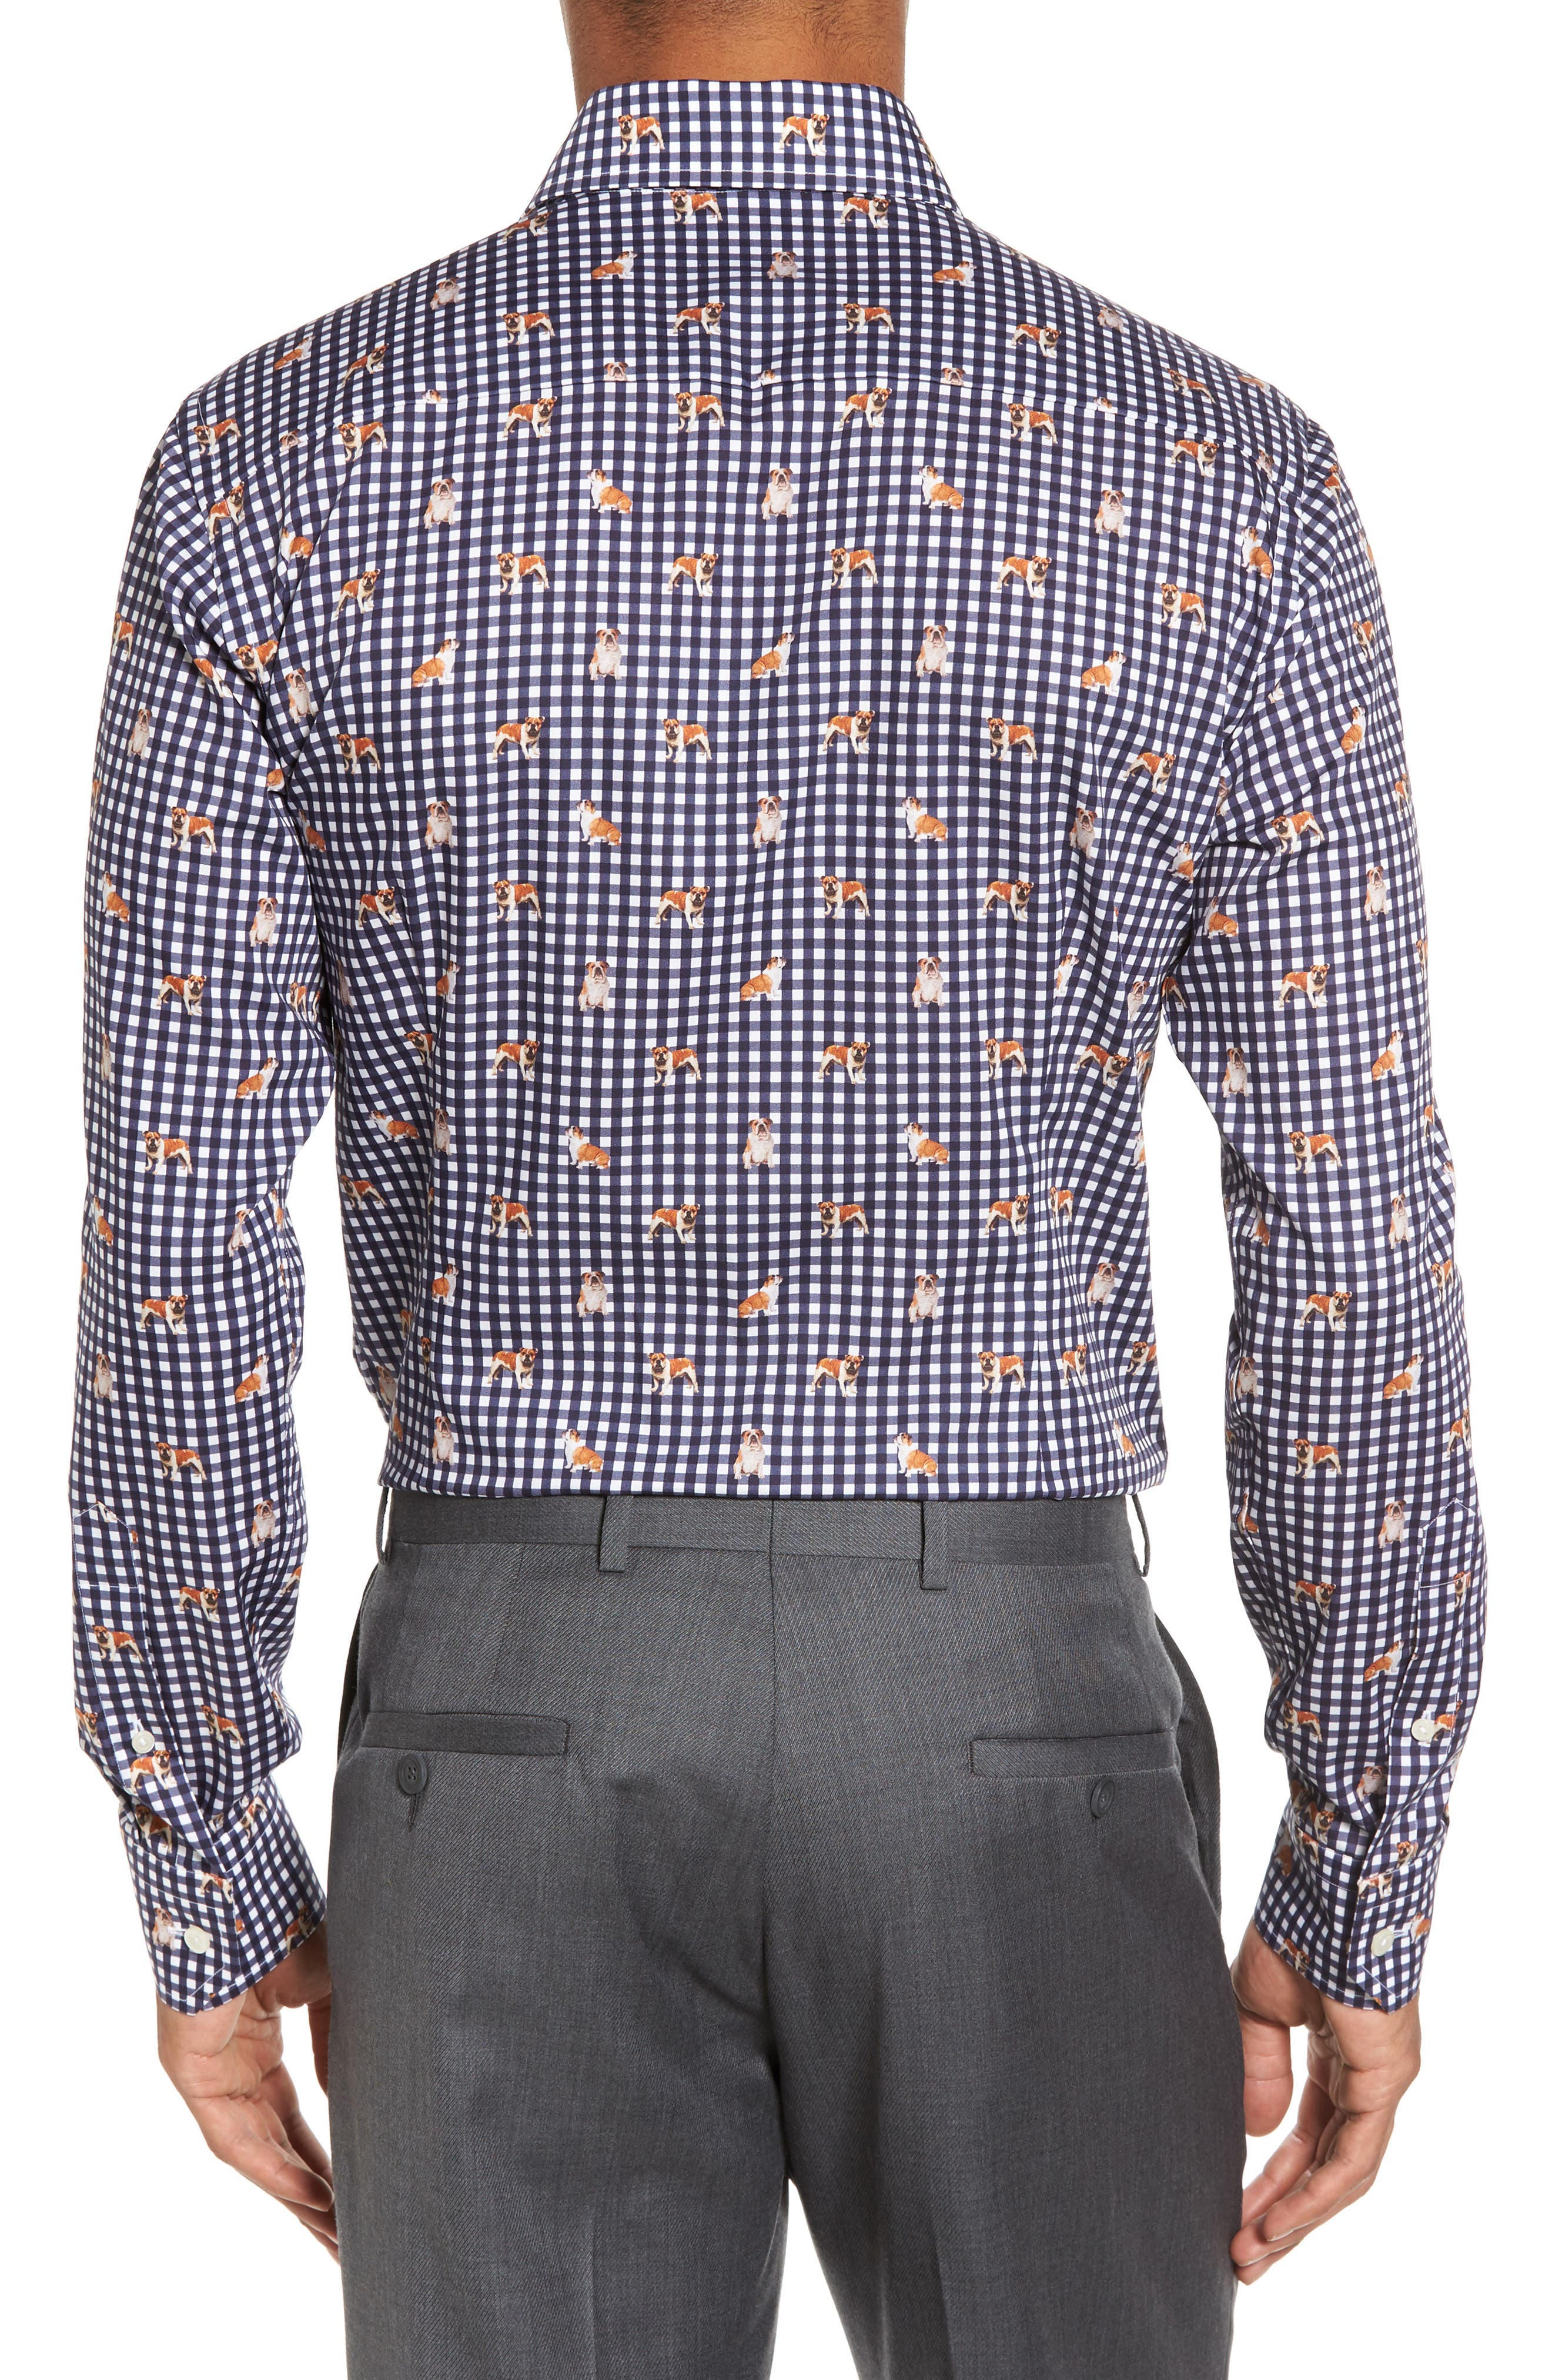 Alternate Image 3  - Eton Slim Fit Print Dress Shirt